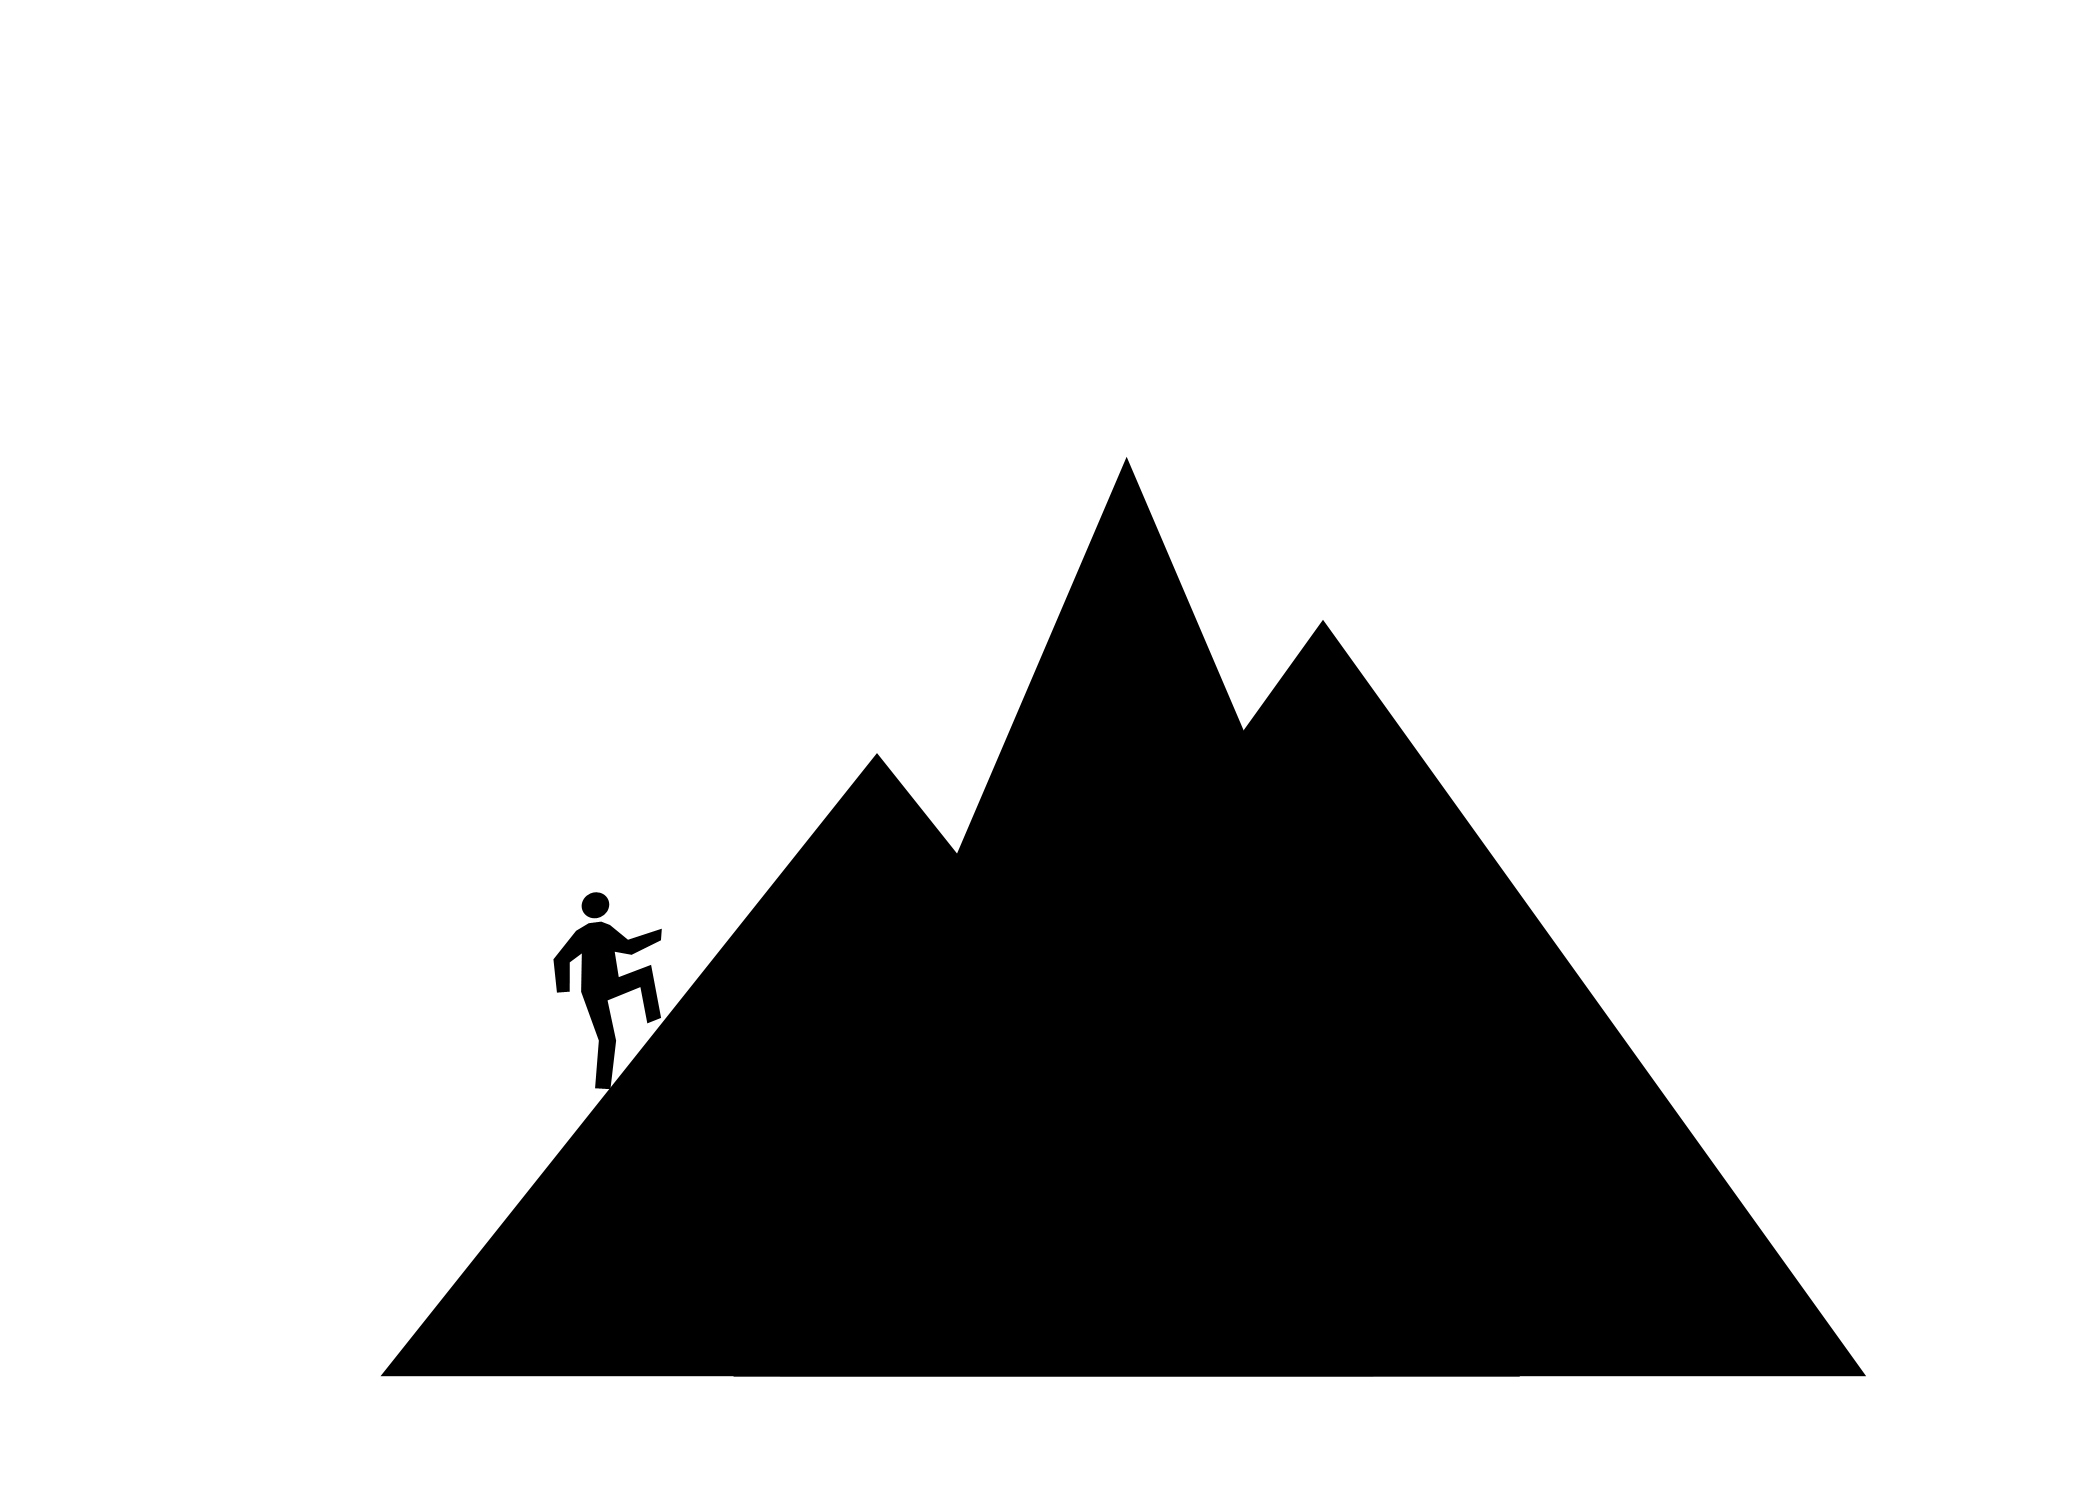 Triangle clipart mountain Janey's Clipart Mountain Pinterest Classroom